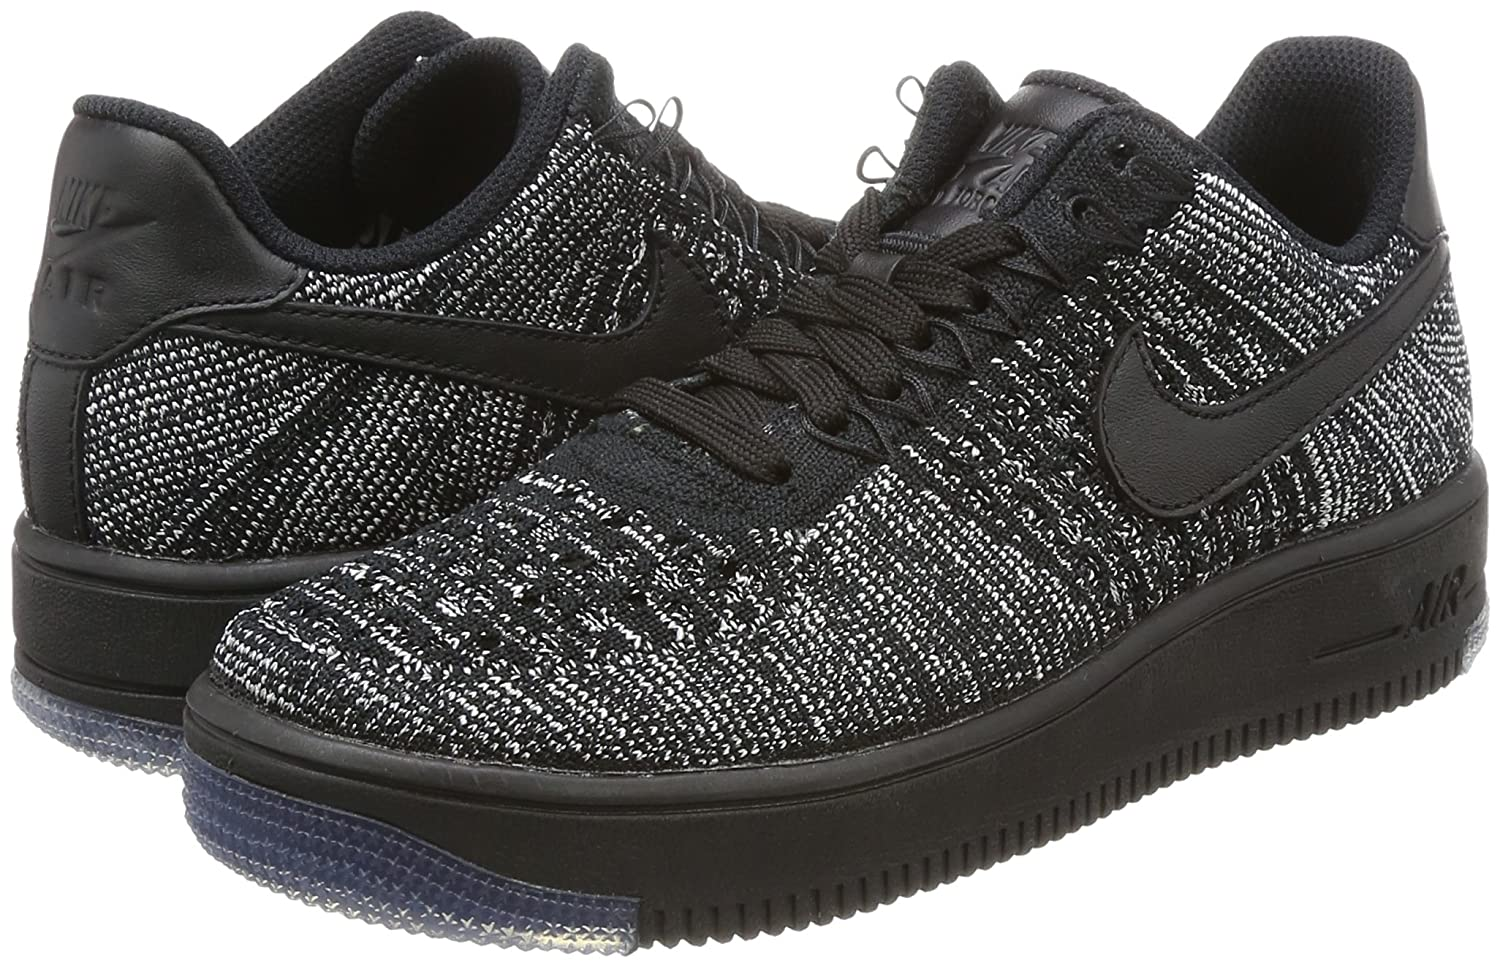 Nike - Air Force 1 Flyknit Low - 820256007 - Color: Gris-Negro - Size: 39.0 4Hf75rHNkj